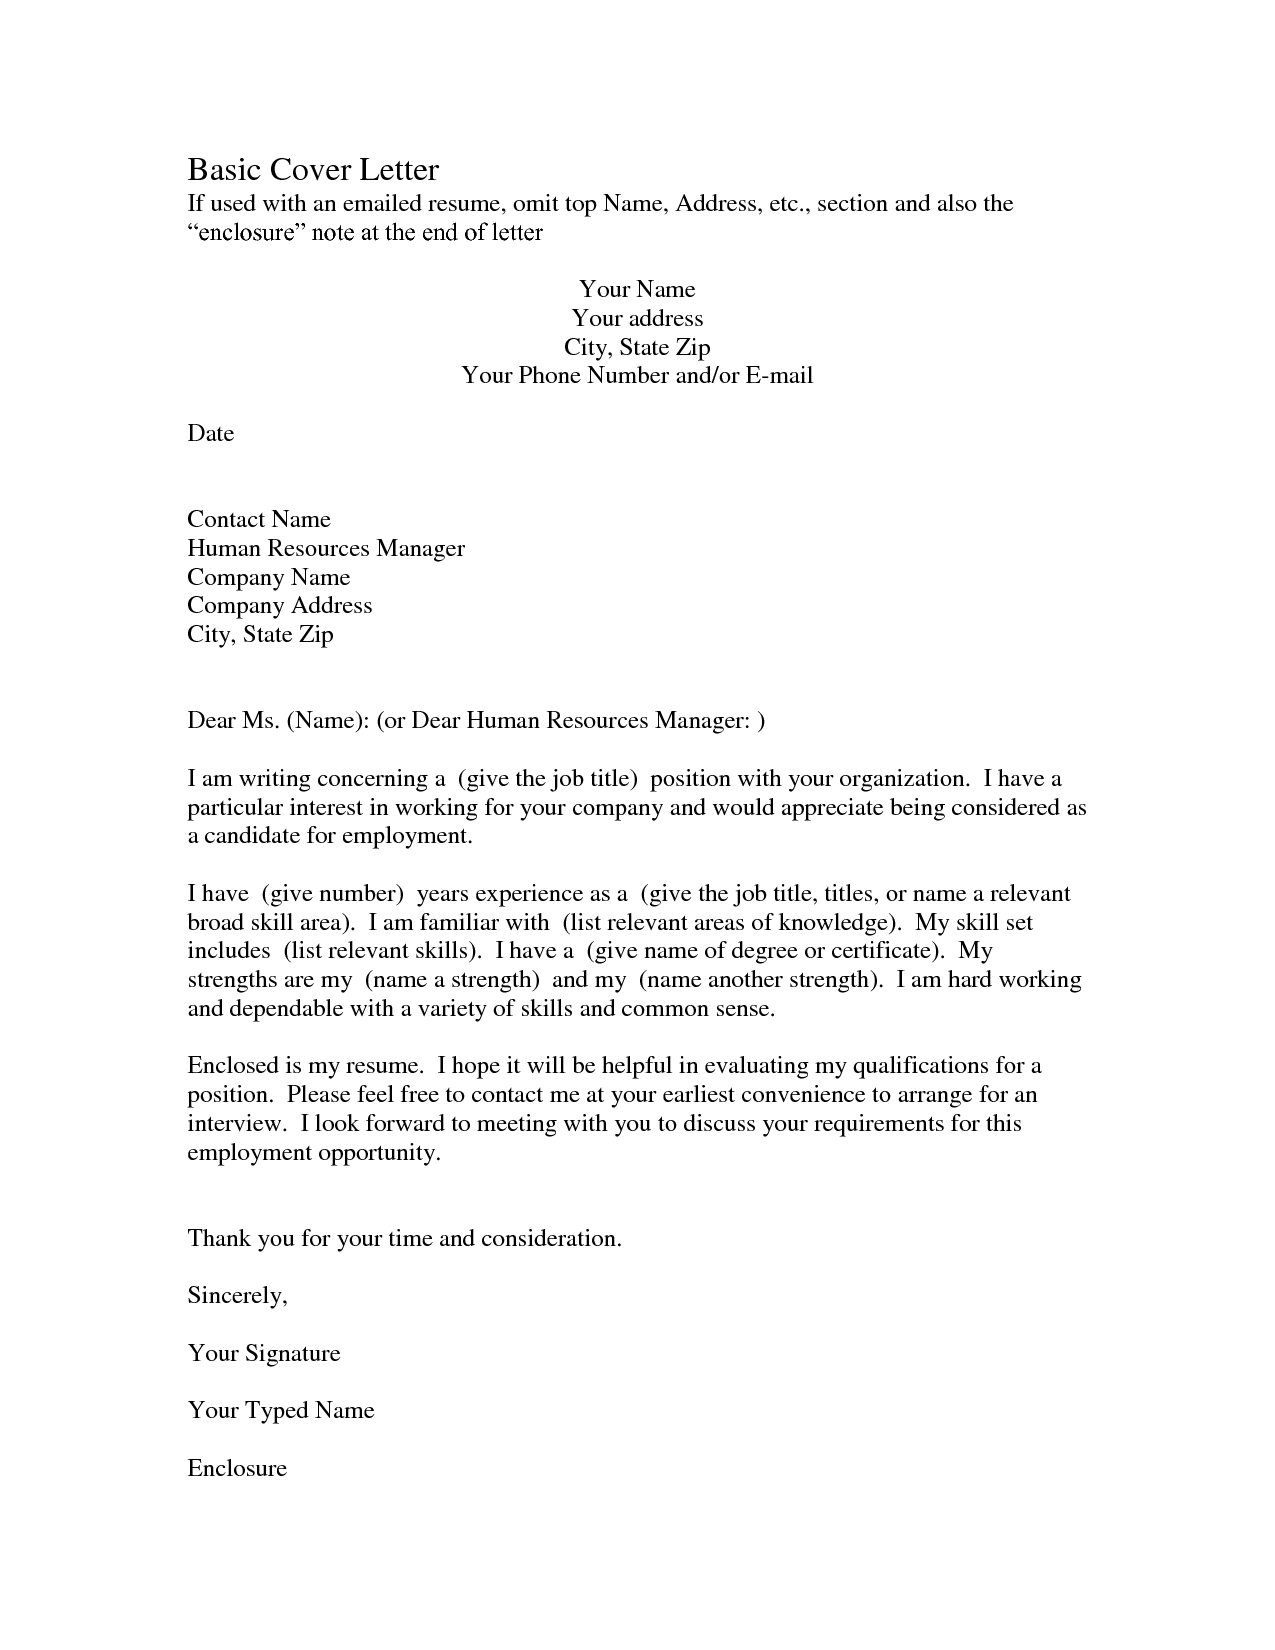 covering letter example simple cover letter examplesimple cover letter application letter sample - What Is An Enclosure On A Cover Letter